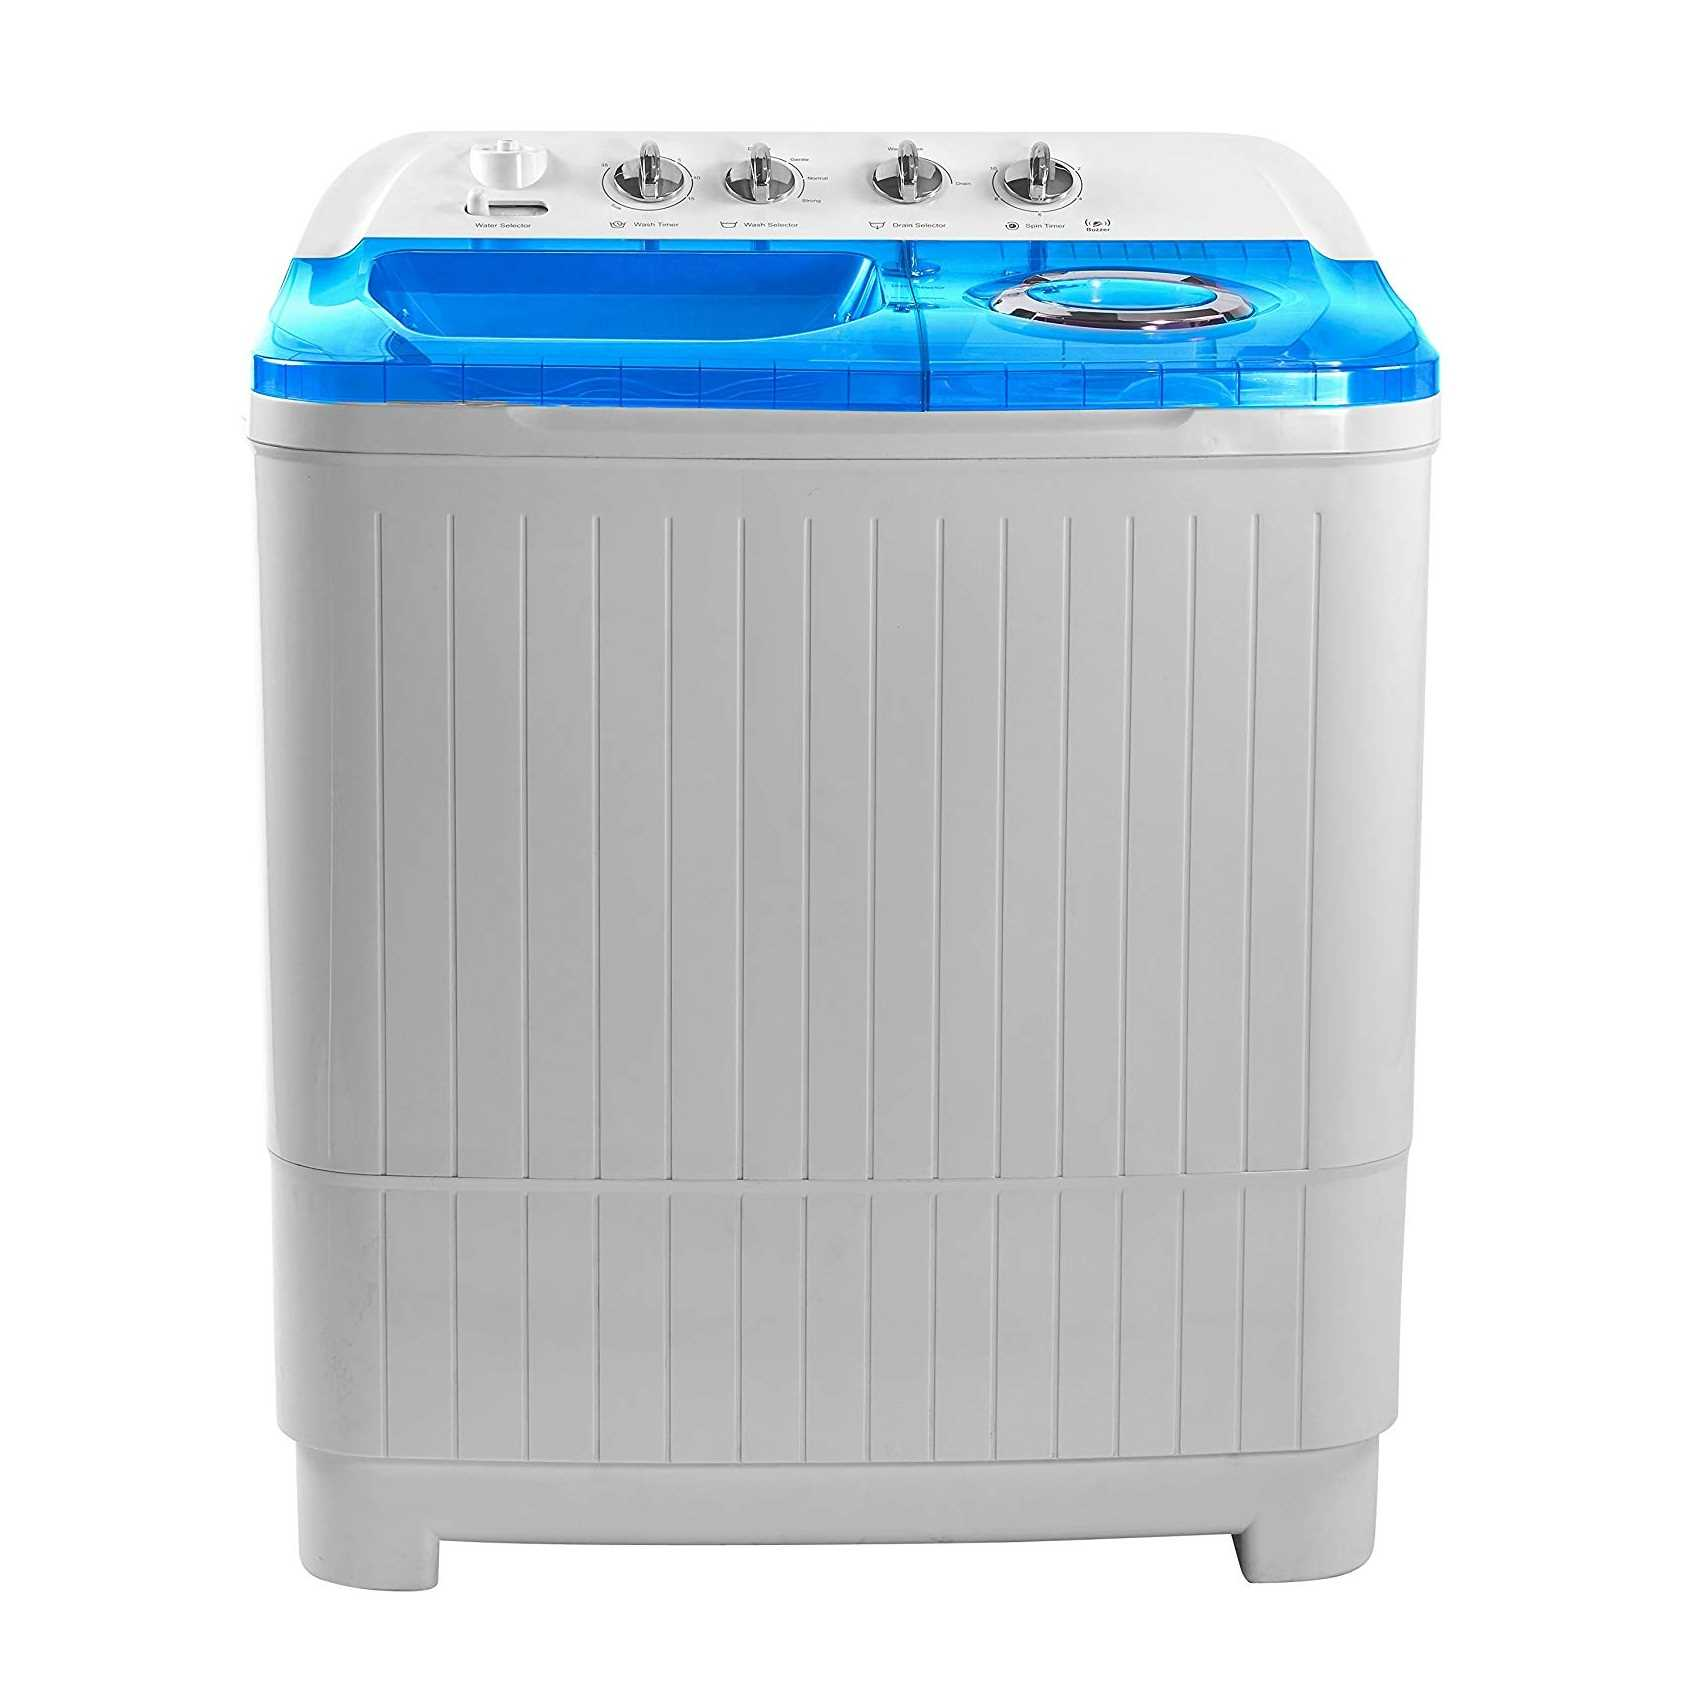 Micromax MWMSA754TDRS1 7.5 kg Semi Automatic Top Loading Washing Machine